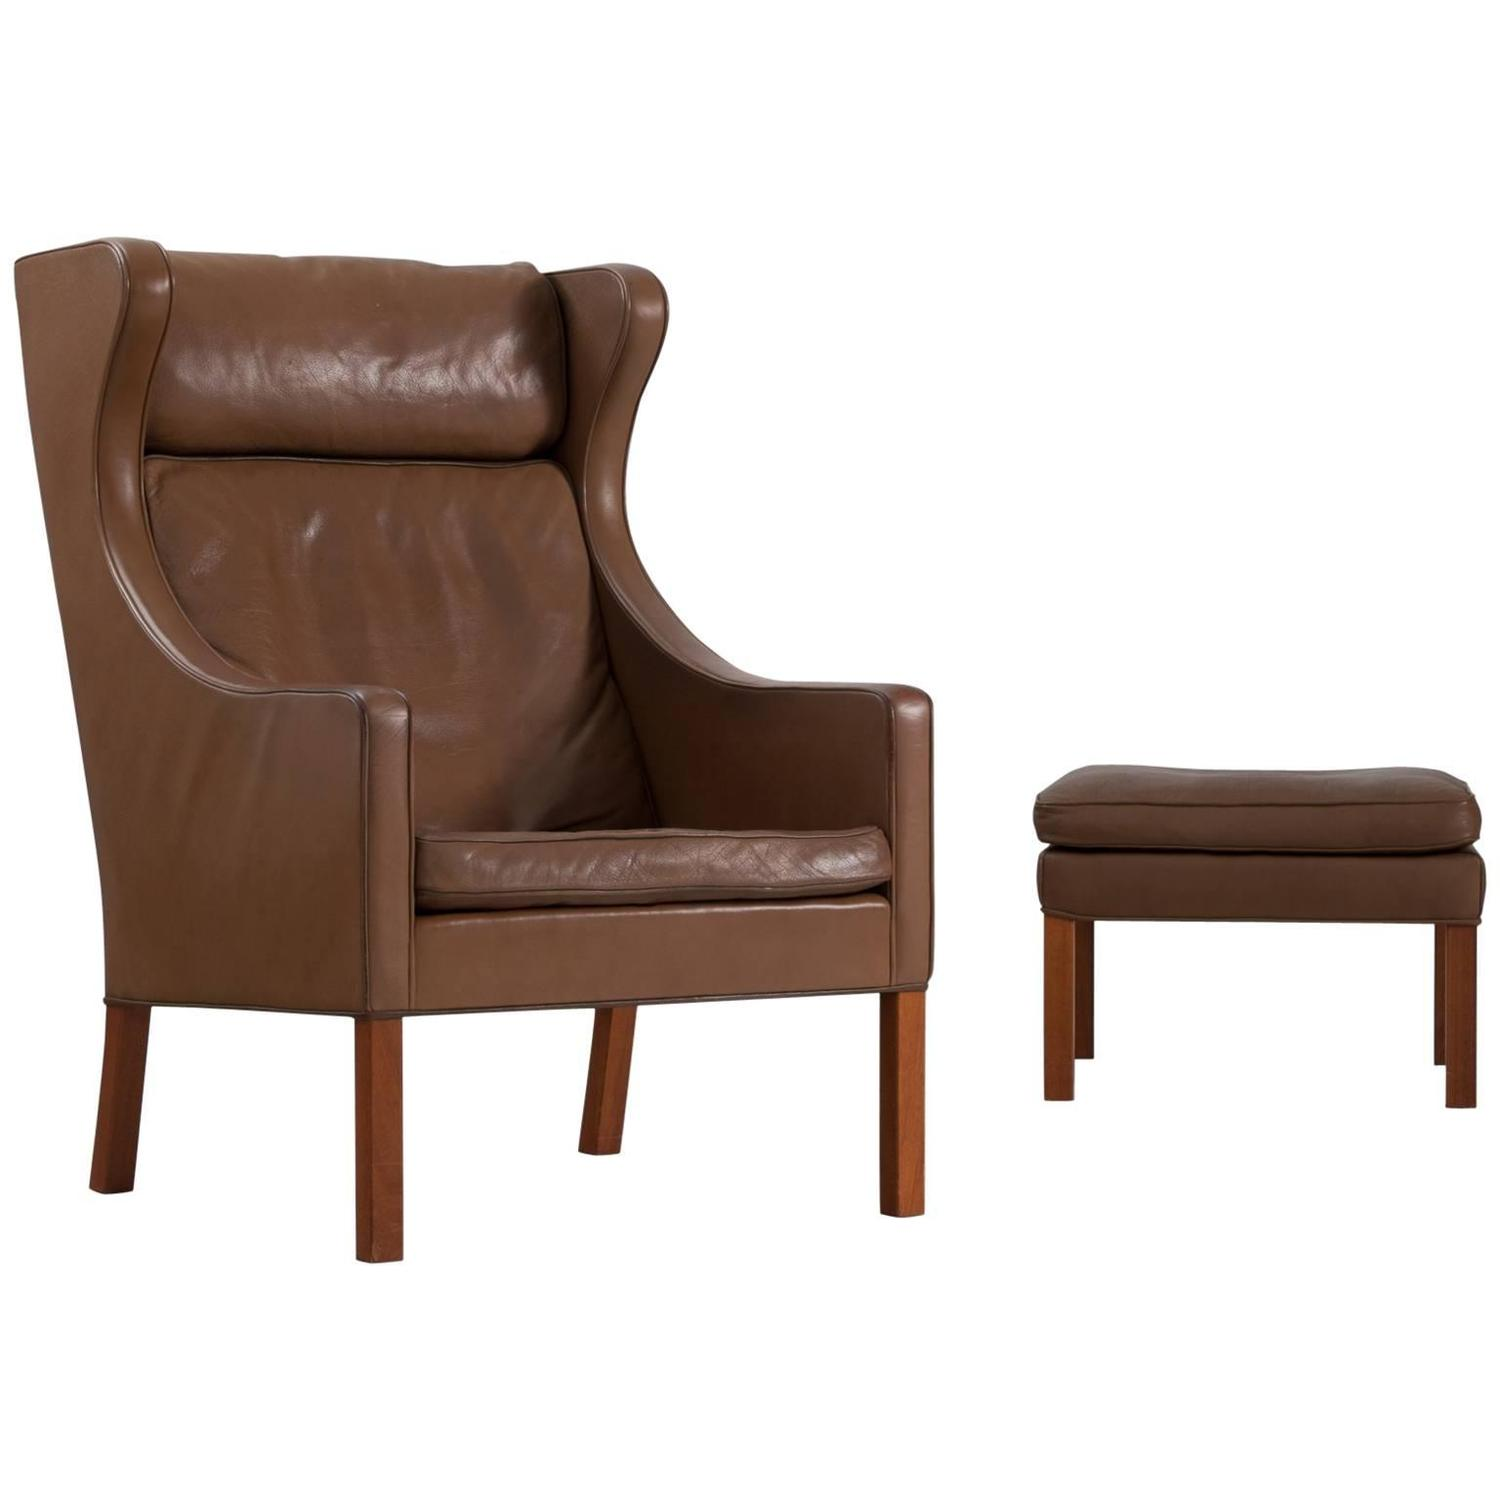 Brown Leather Wingback Chair Børge Mogensen Brown Leather Wingback Chair Denmark